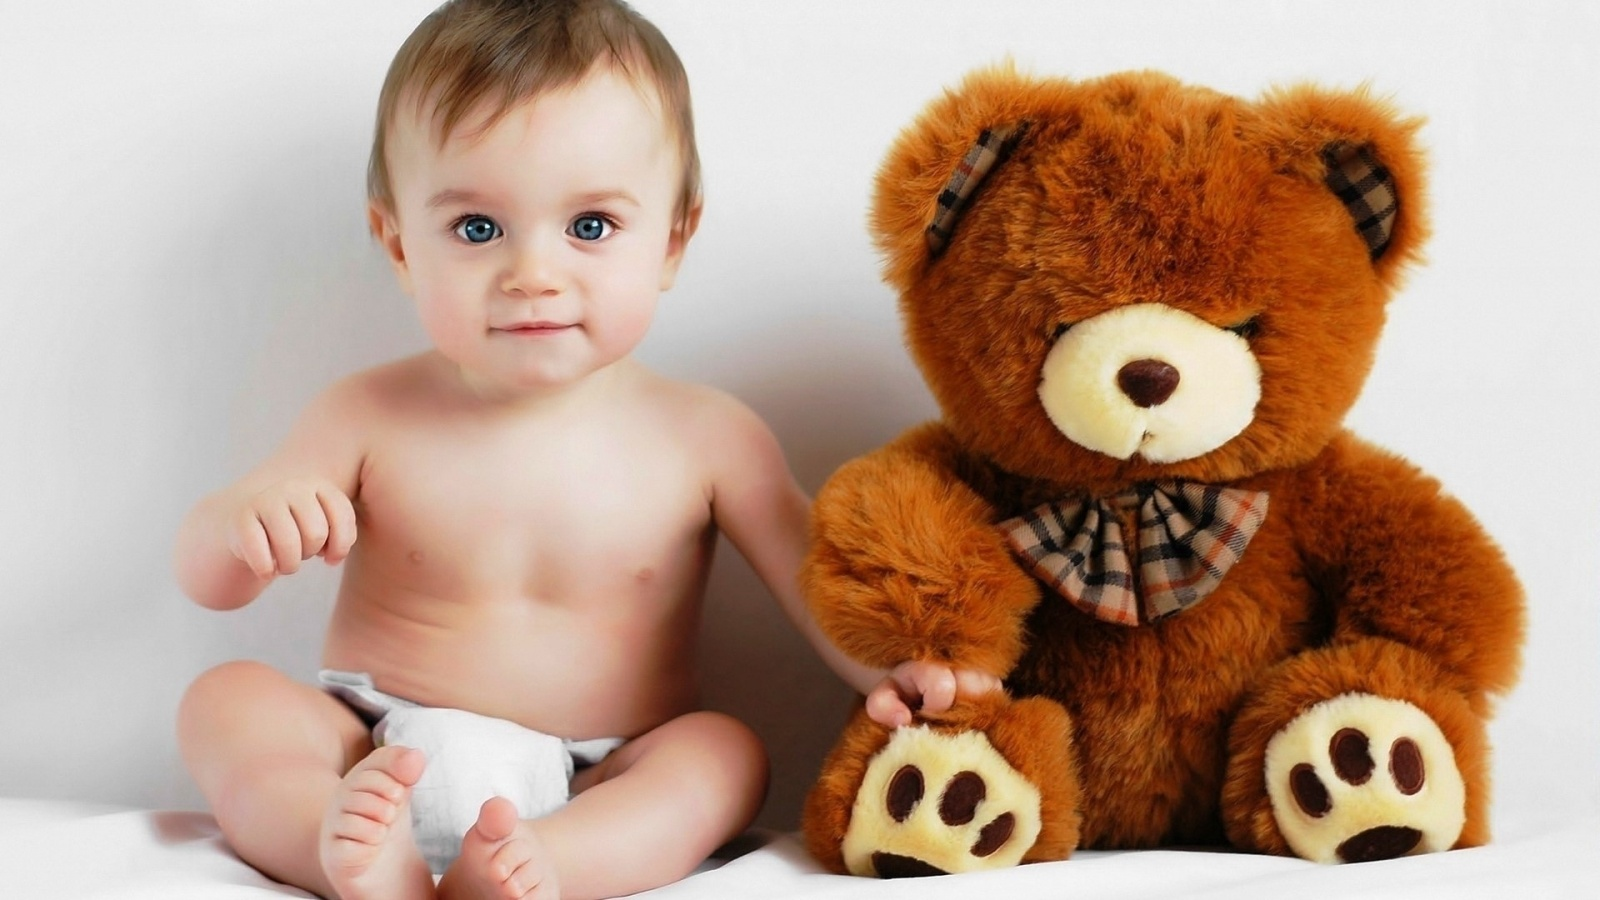 baby and teddy bear wallpapers - 1600x900 - 325195